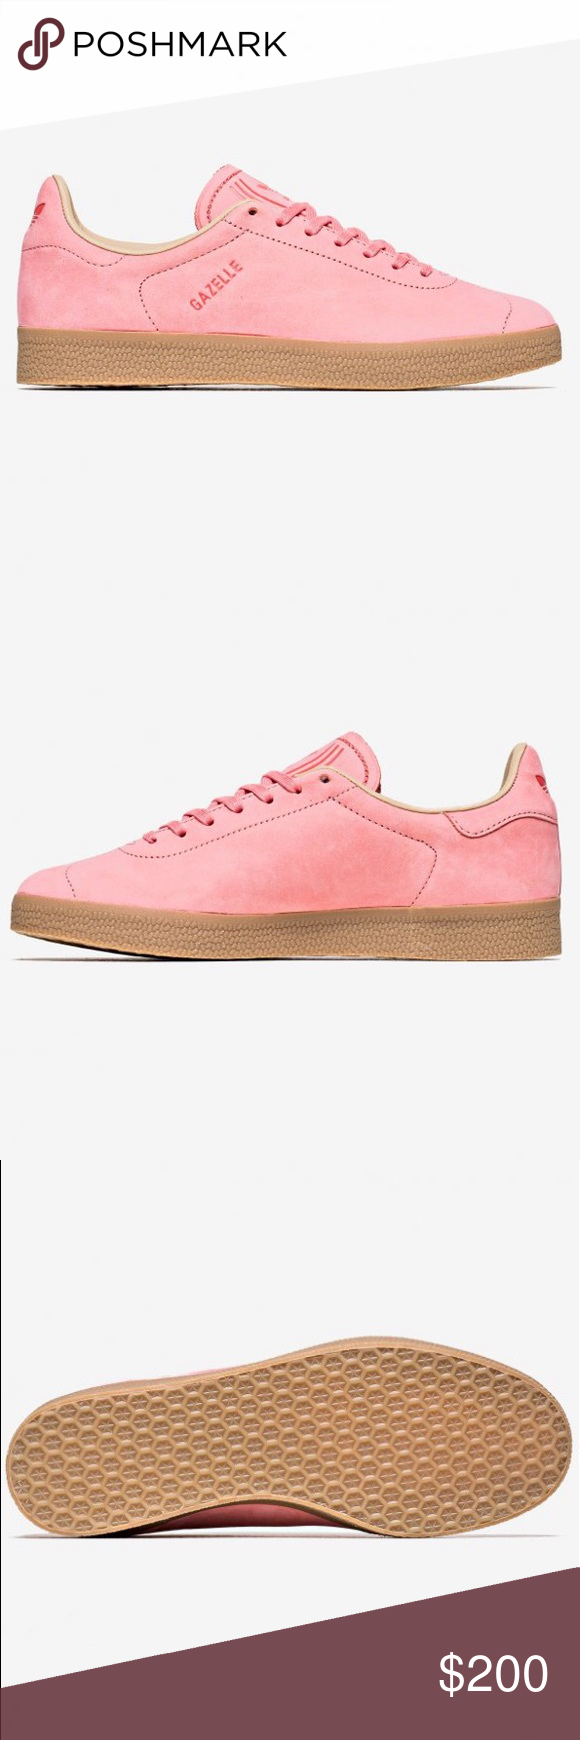 63f89f425431 NWT! Adidas Gazelle Decon Pink Men s 10 Shoes Brand New With Tags ...